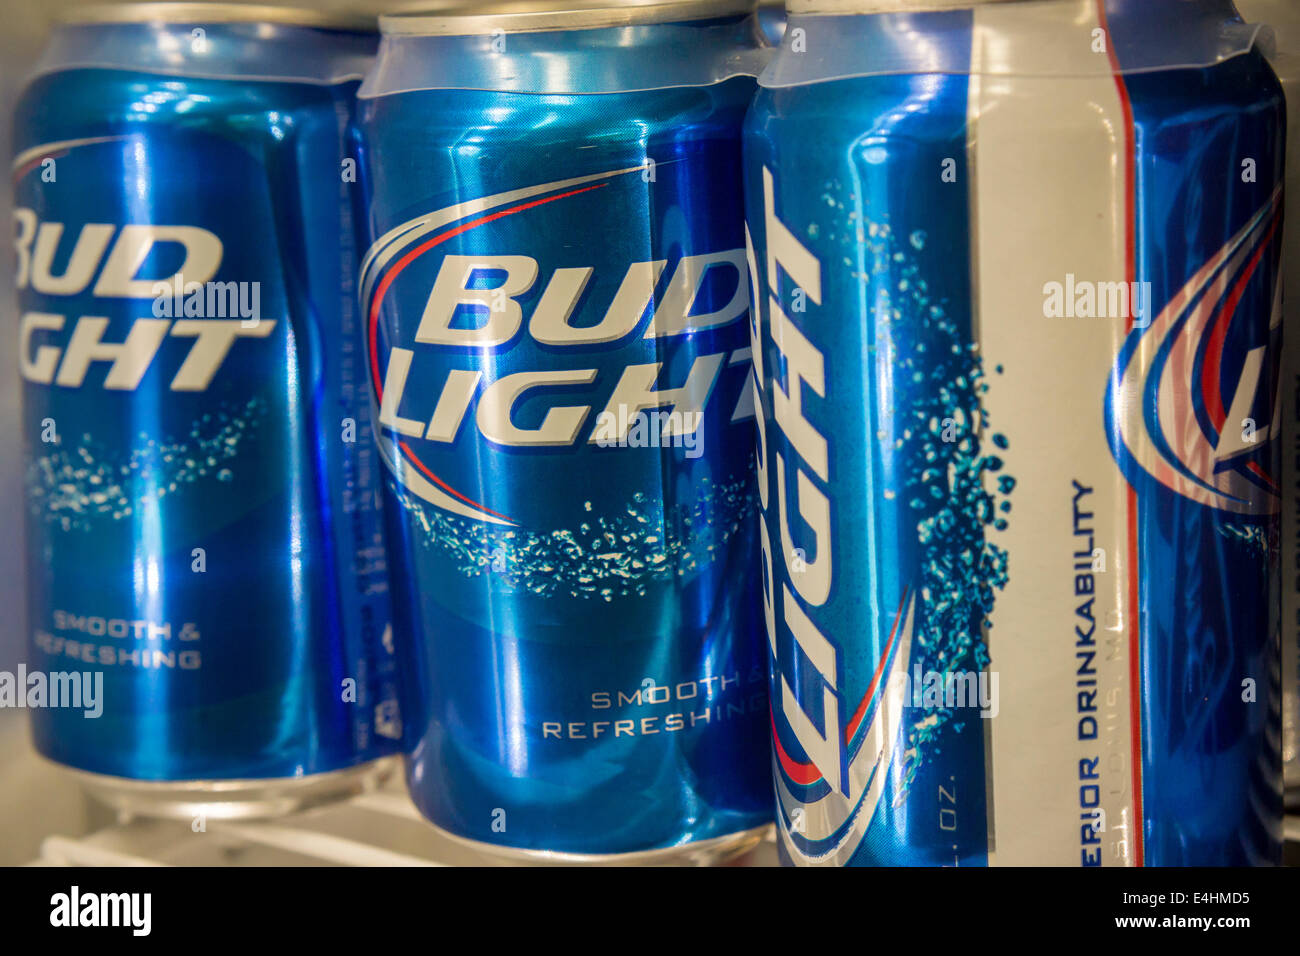 Bud Light Beer Store Stock Photos & Bud Light Beer Store